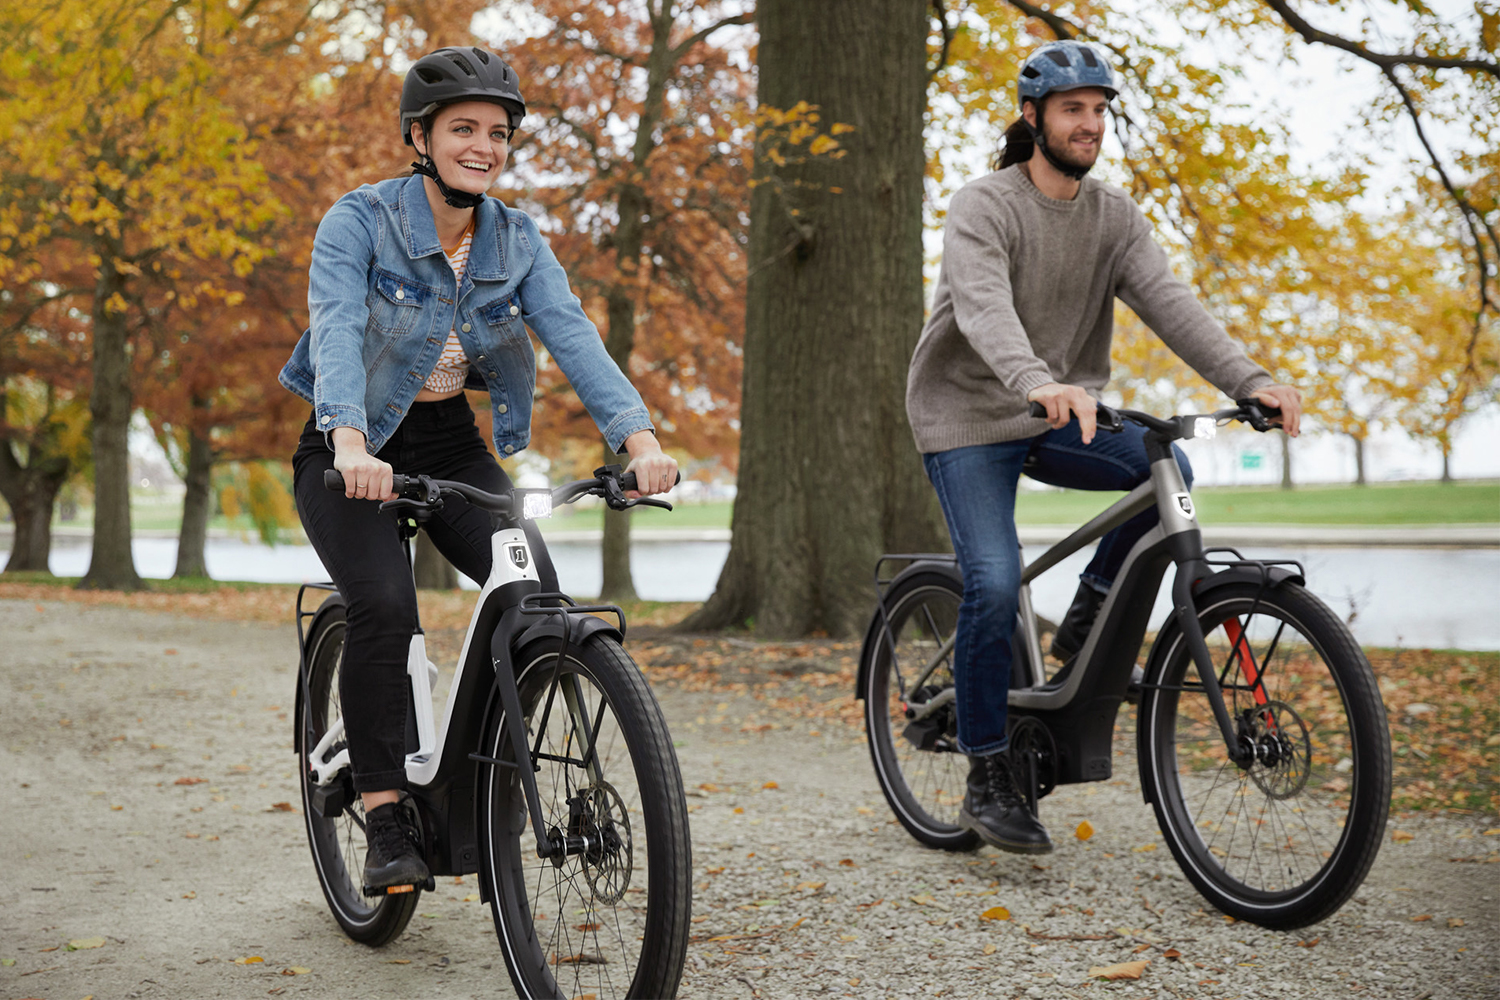 A woman and a man riding two electric bikes from Harley-Davidson's new offshoot company Serial 1 down a street in autumn